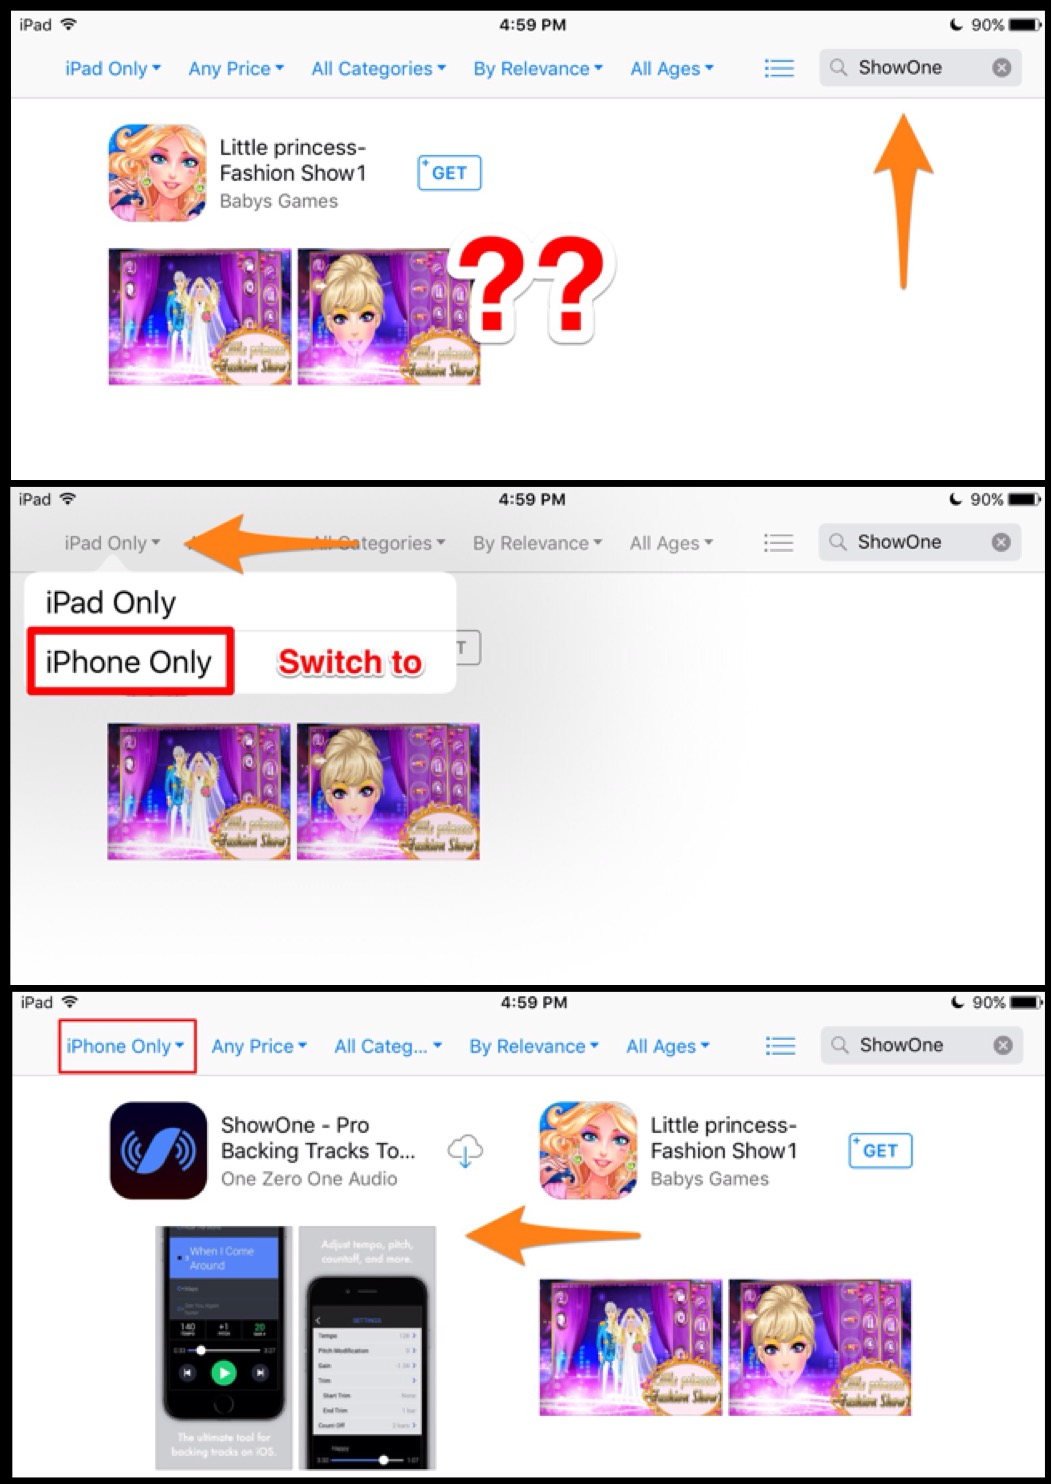 I searched for ShowOne on my iPad and can't find it!